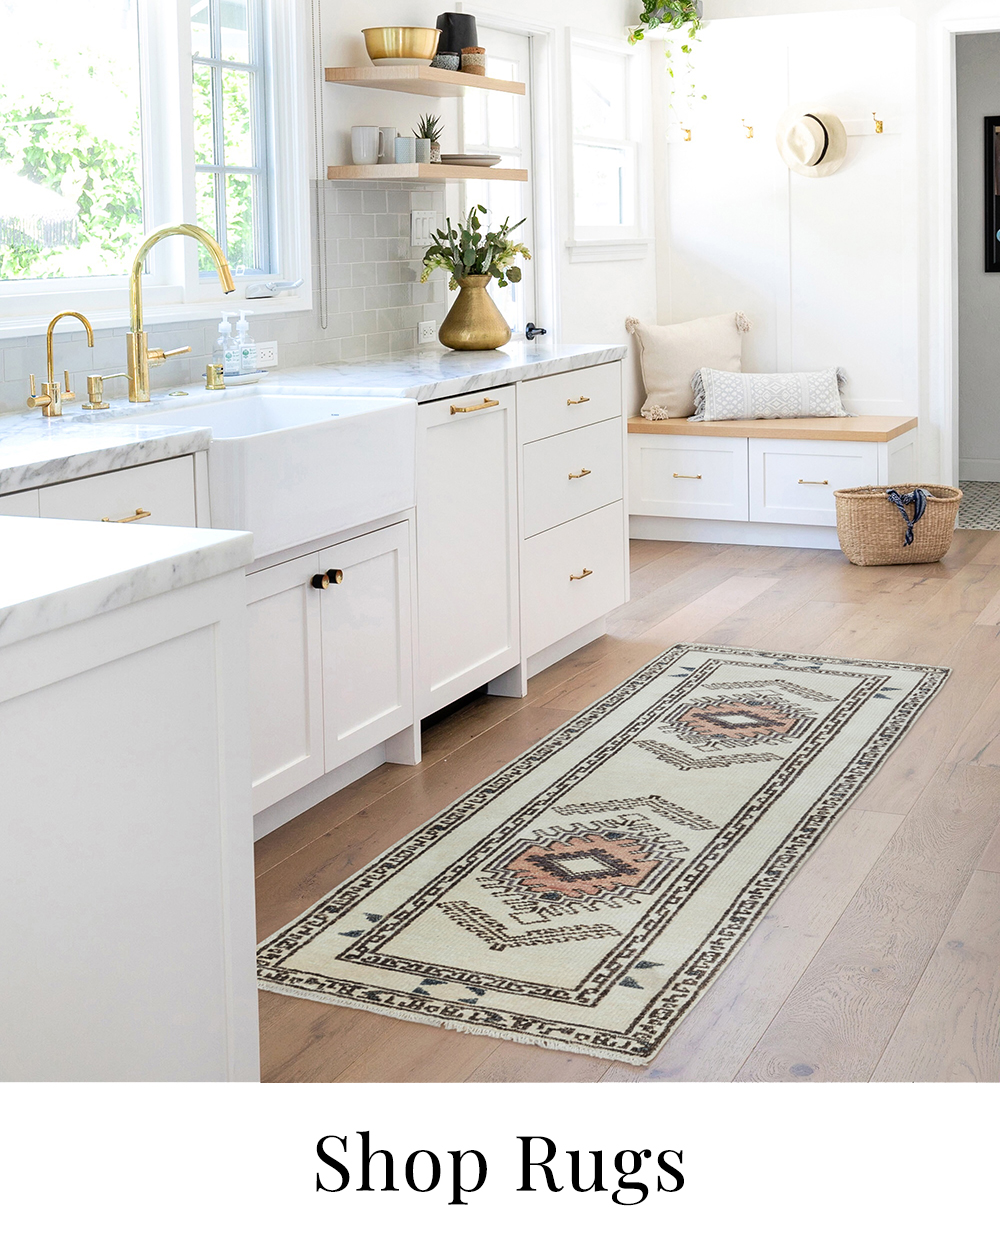 Why I decided to add southwest rugs all over the house